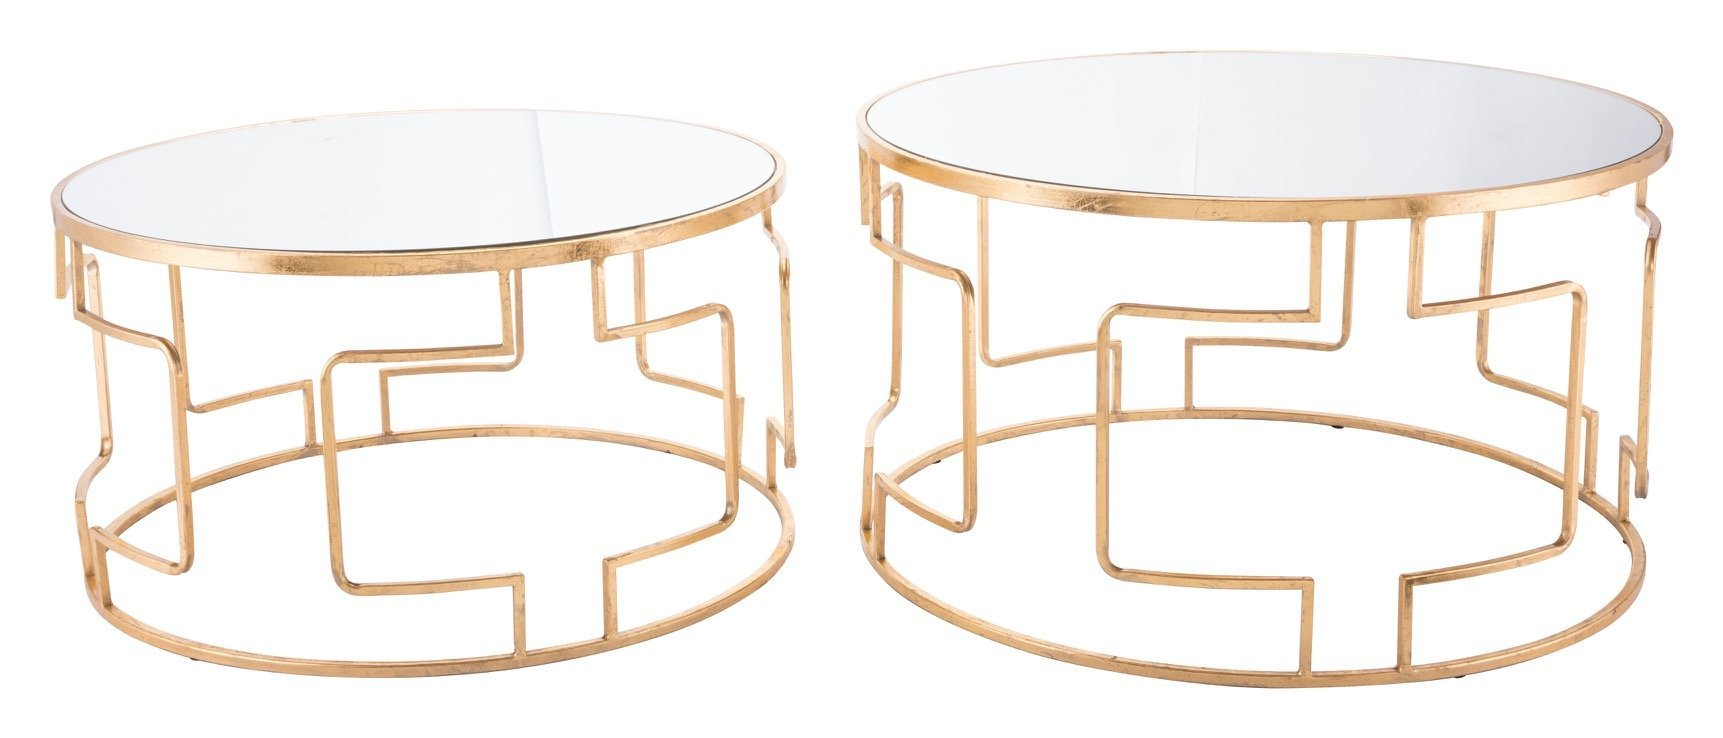 king round accent tables gold with mirrored glass top set side alan decor table weber rustic kitchen small bar height oak trestle house designs patio umbrella modern armoire